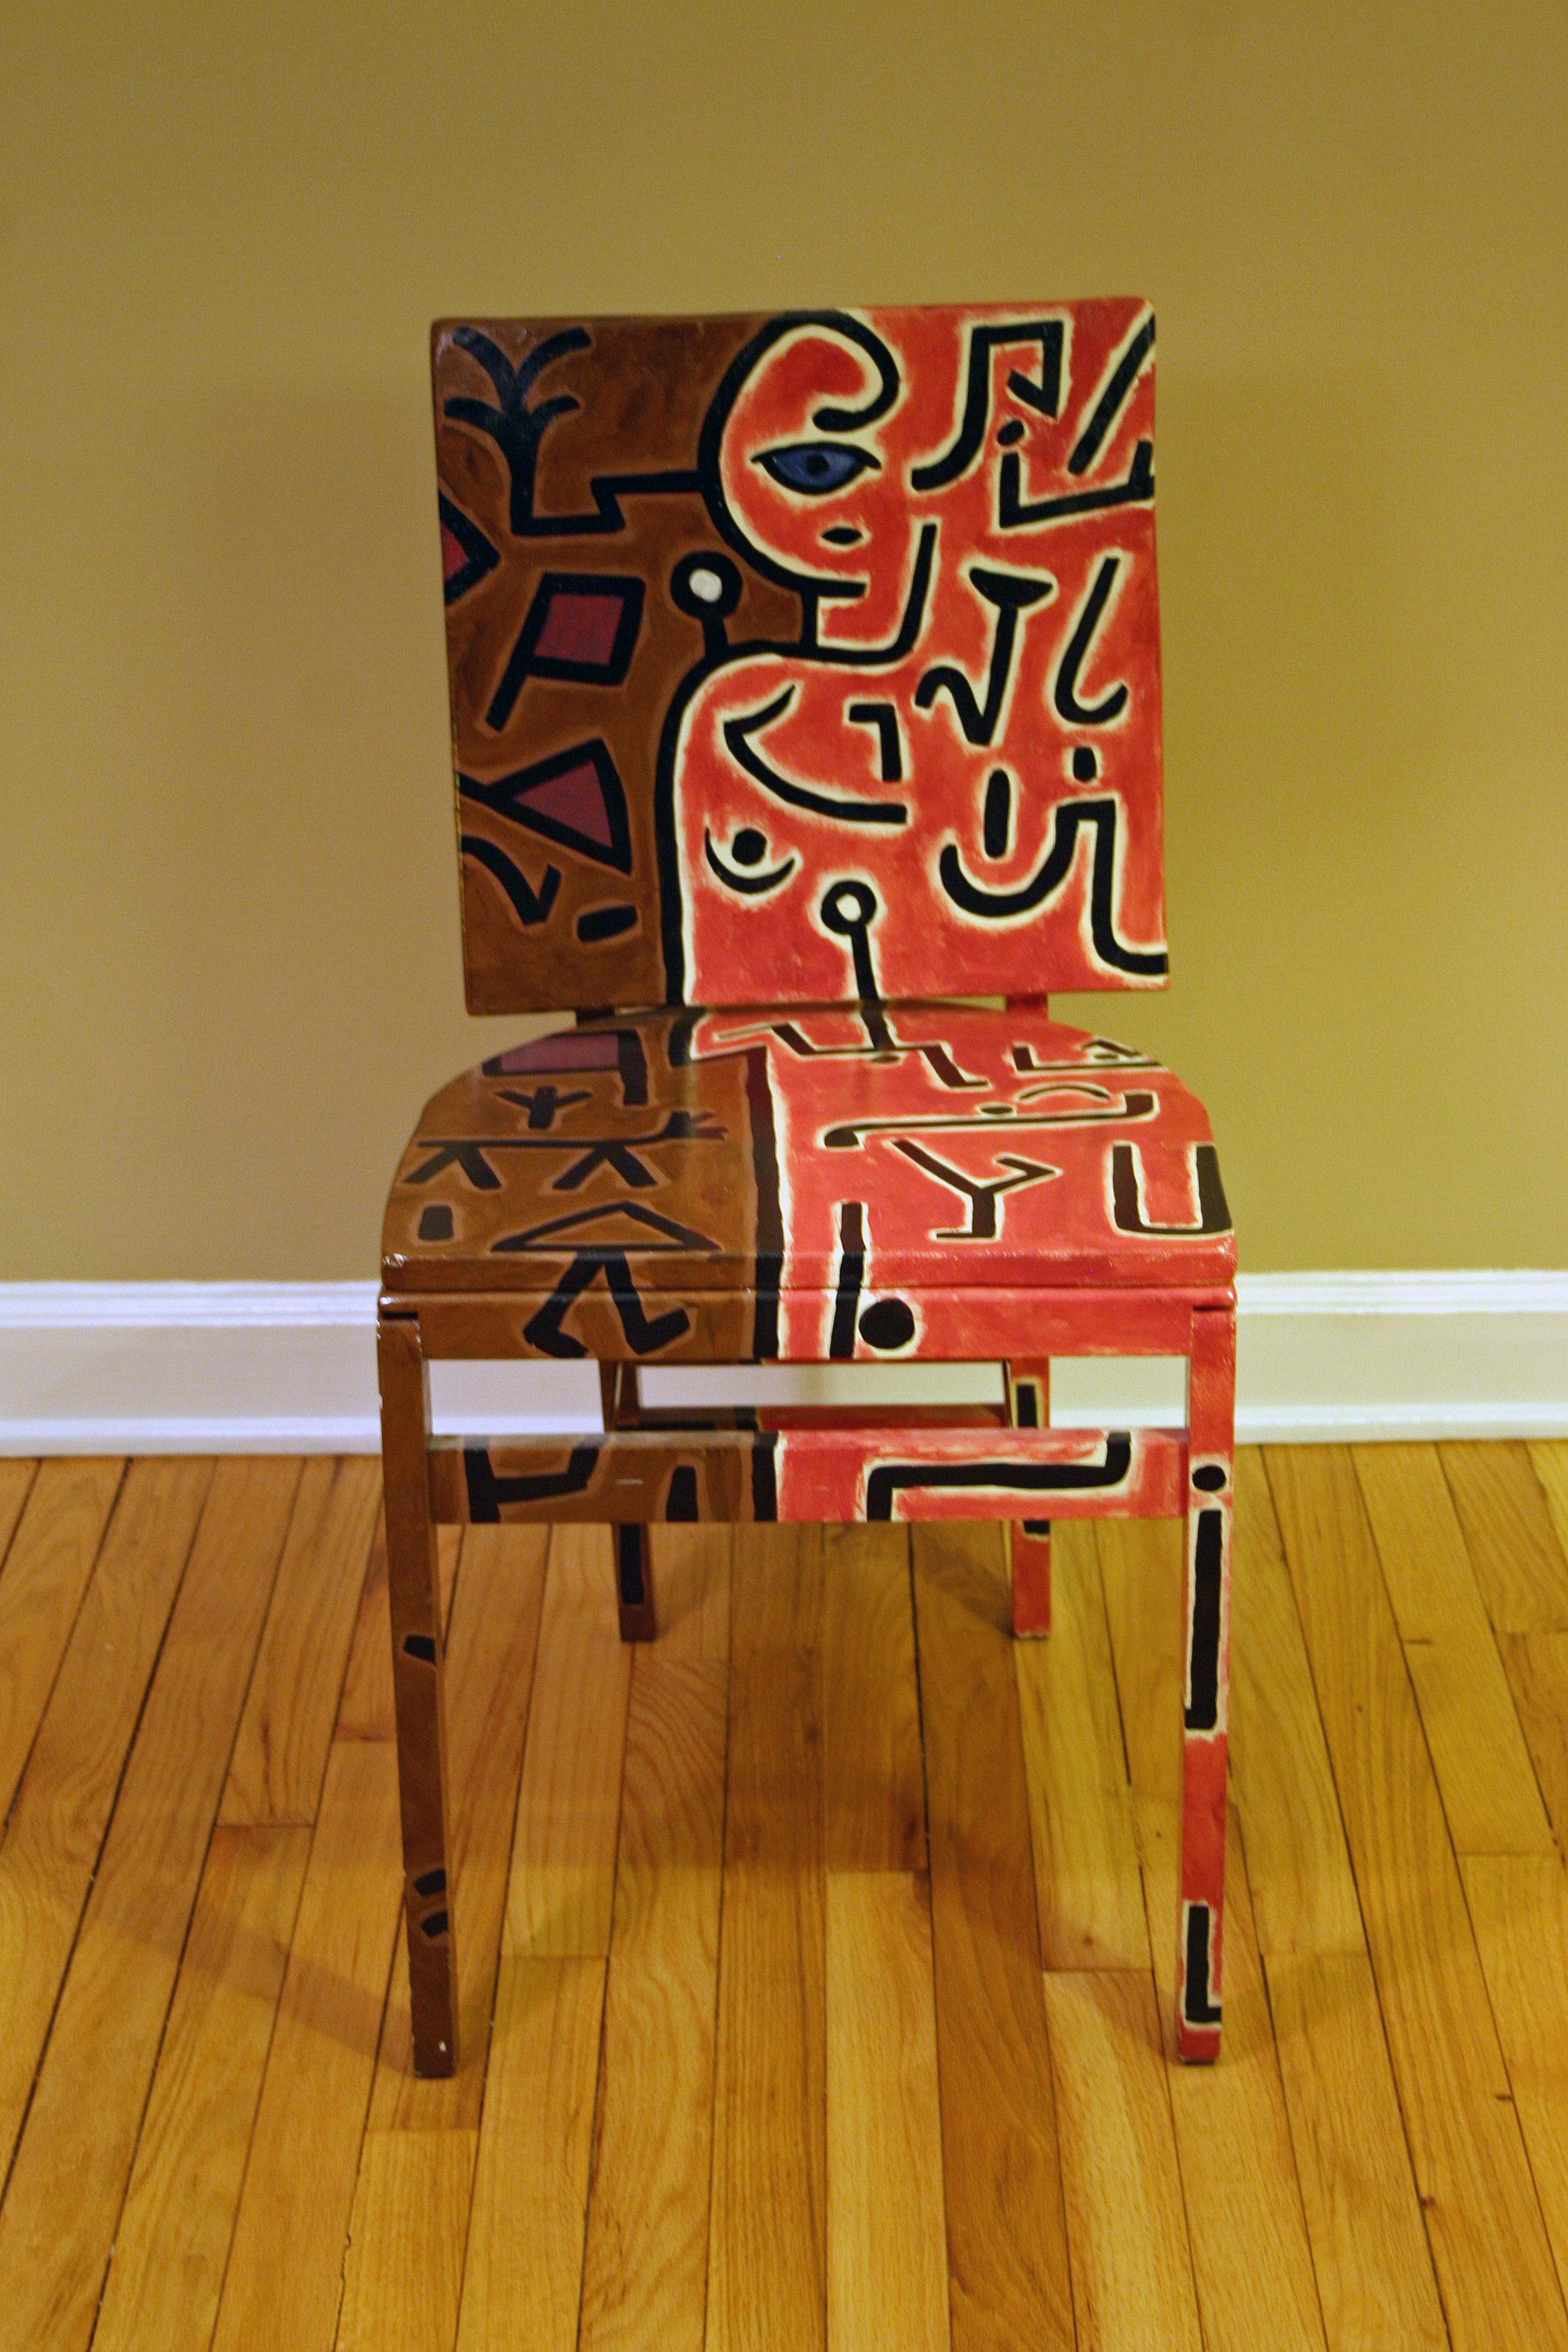 This Upscaled Painted Chair Pays Tribute To Kleeu0027s Intension Painting. The  Striking Cubist Piece Of Artwork Is Painted In Acrylic Blends And Shades Of  Red, ...